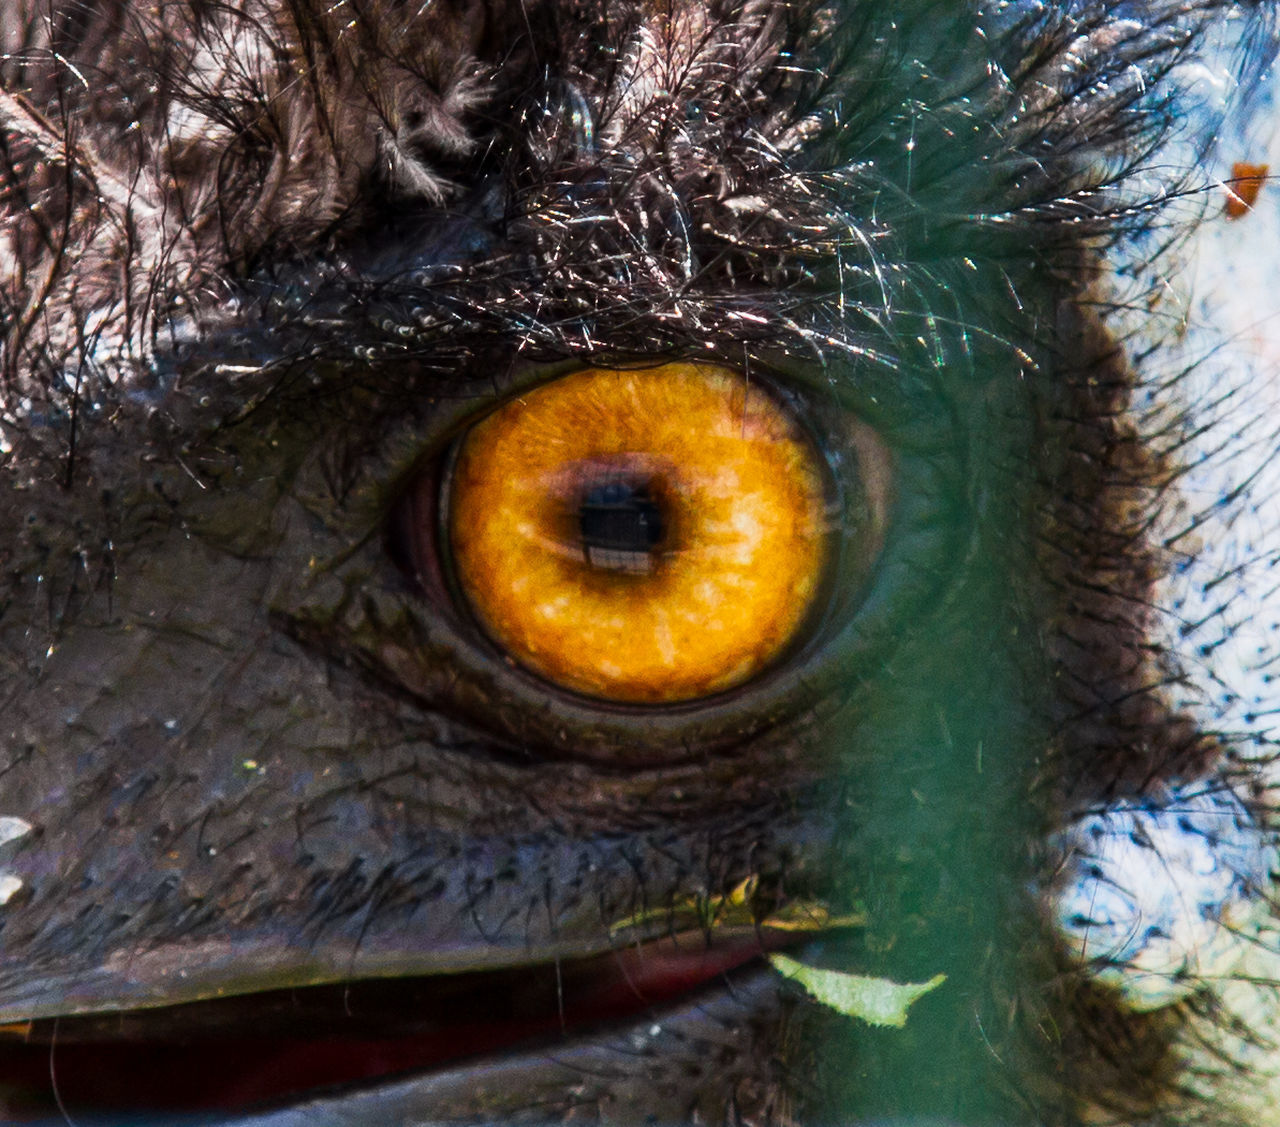 Animal Themes Close-up Day Eyeball Nature No People One Animal Outdoors